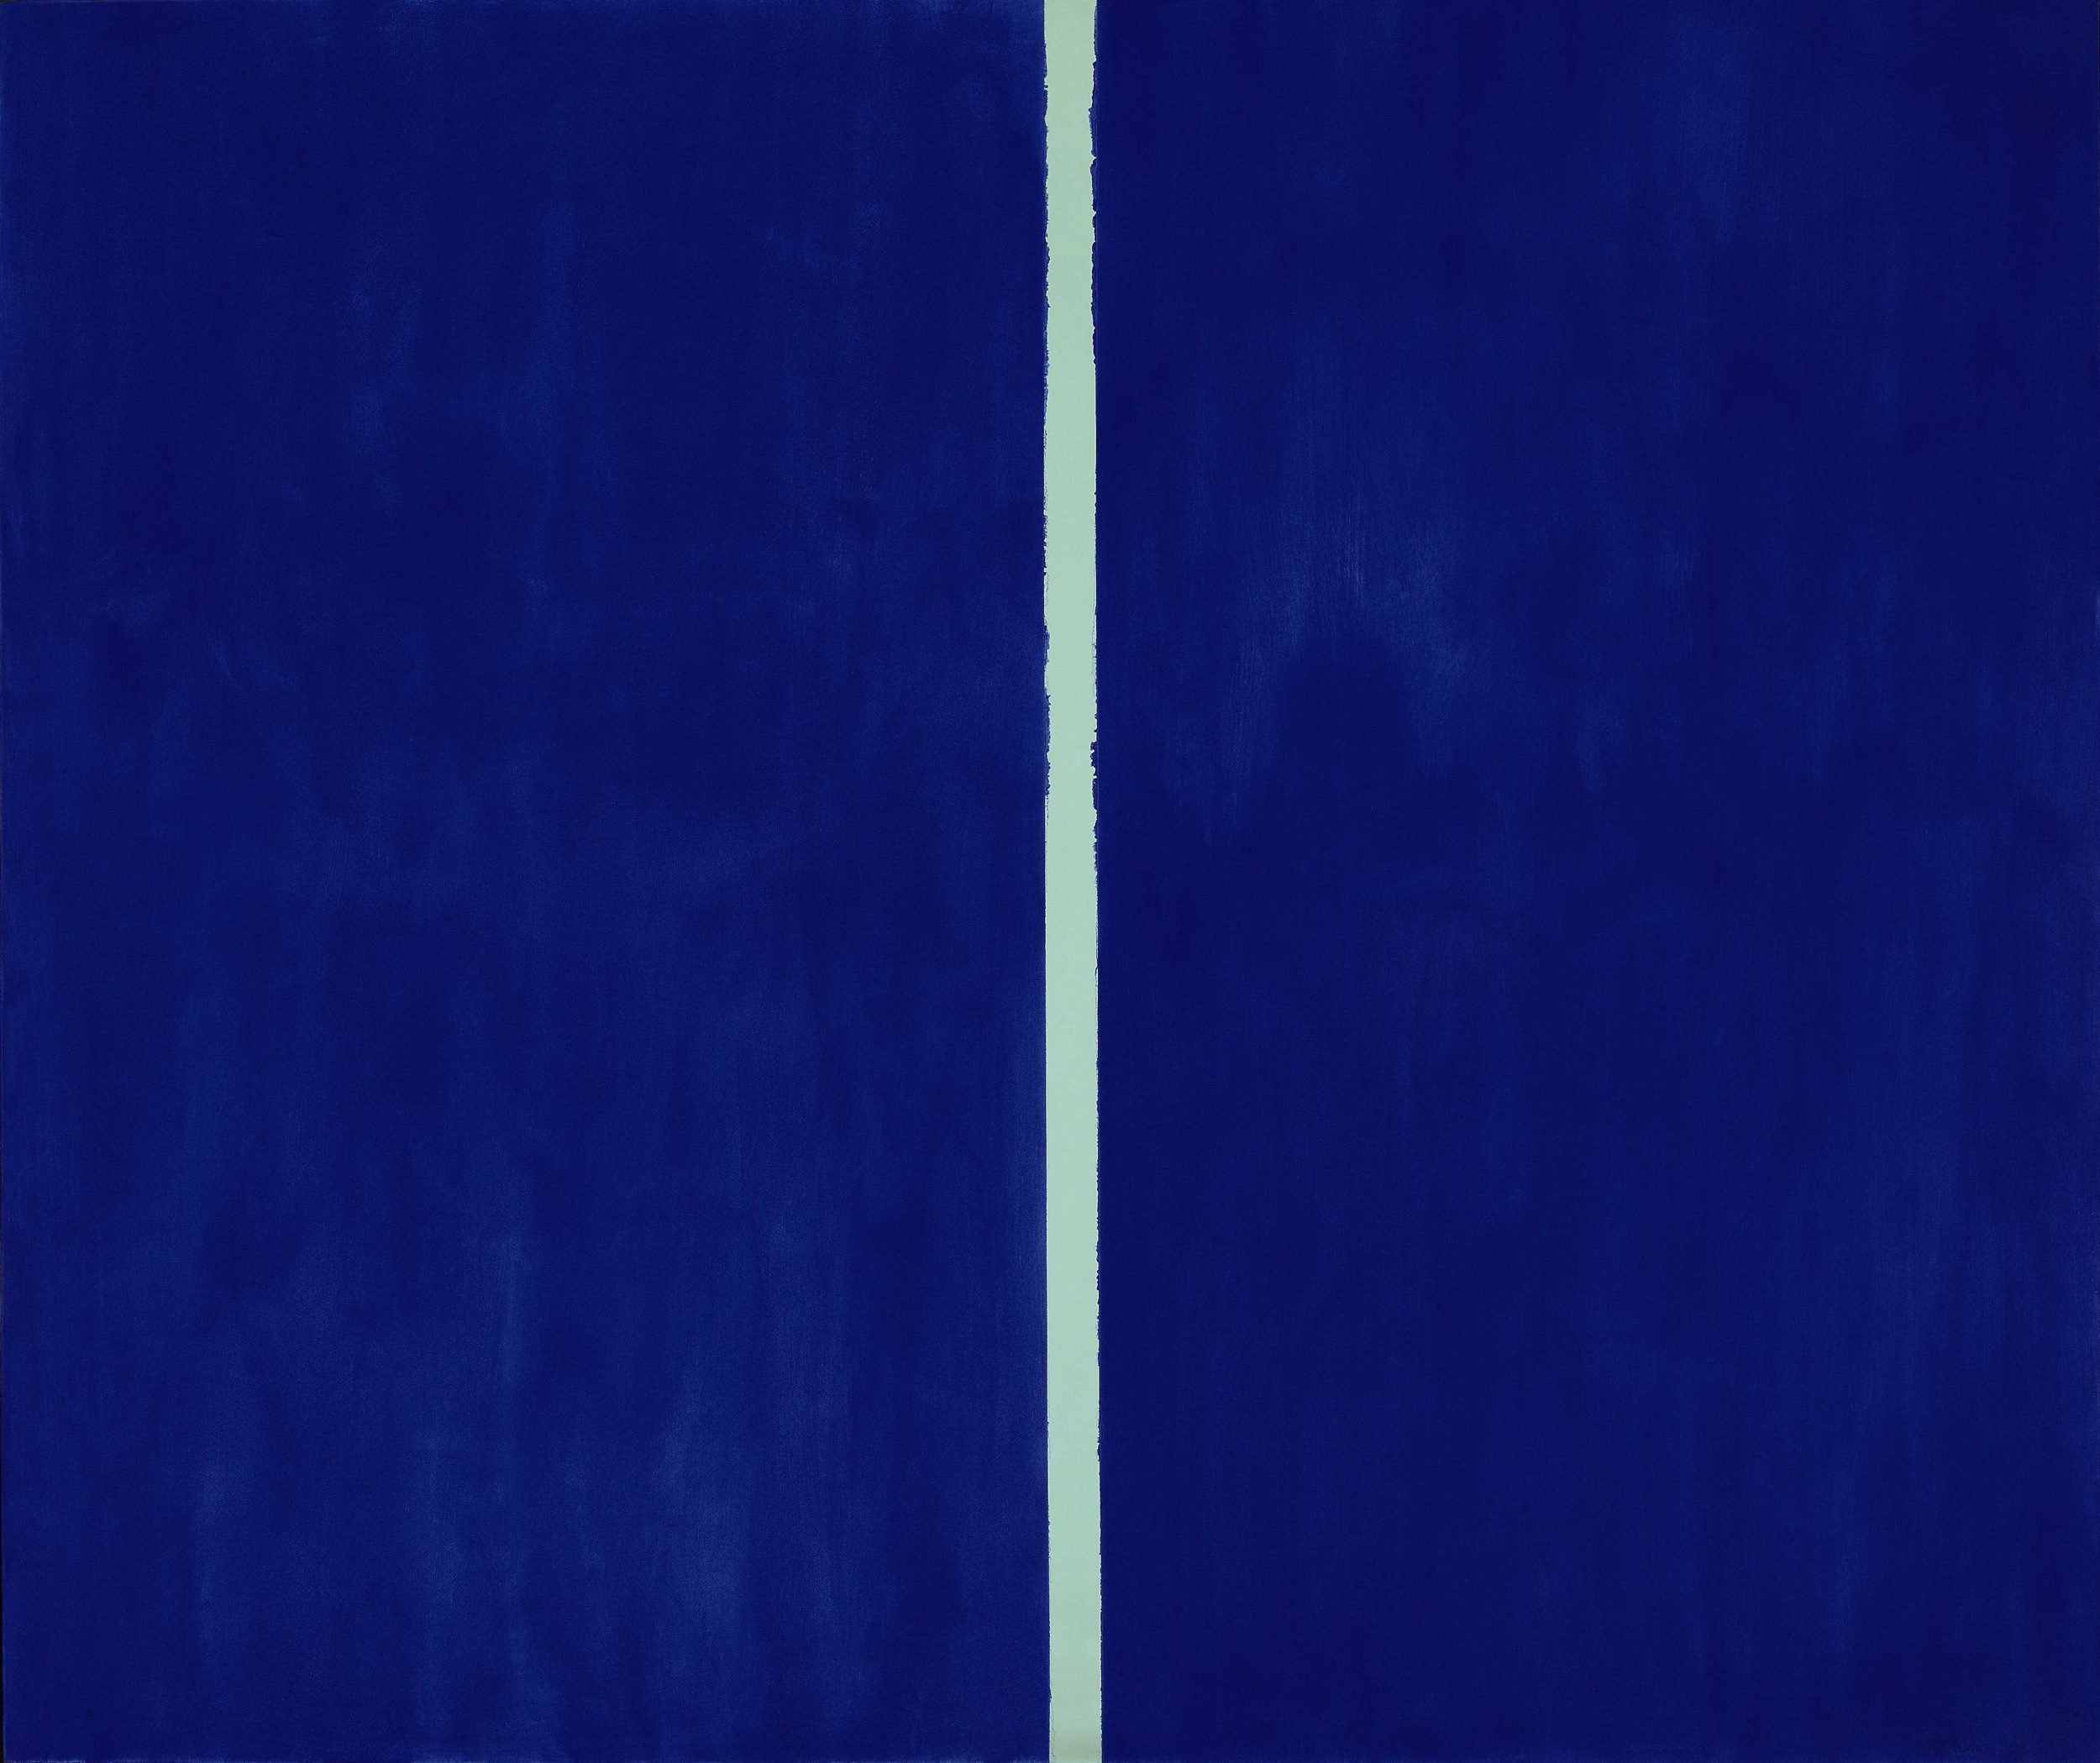 Blue Line Art Painting : Barnett newman s glimpses of the sublime are a bargain